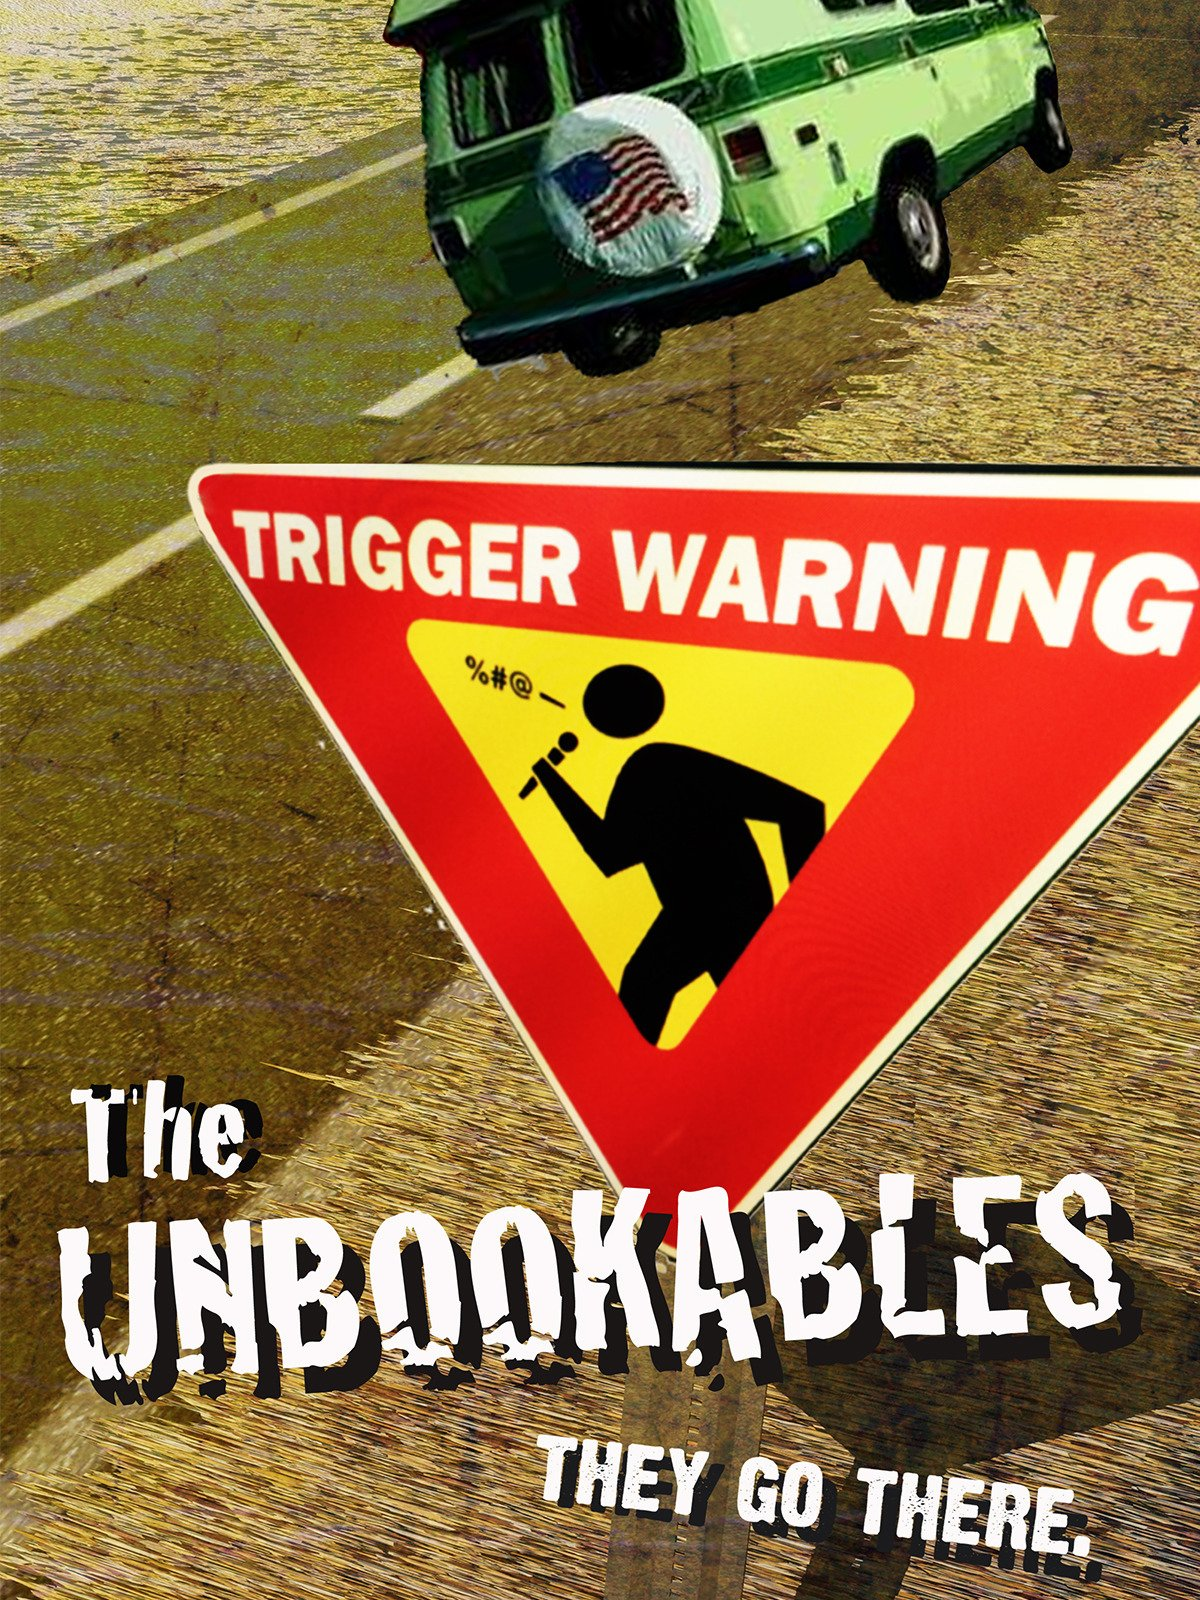 The Unbookables